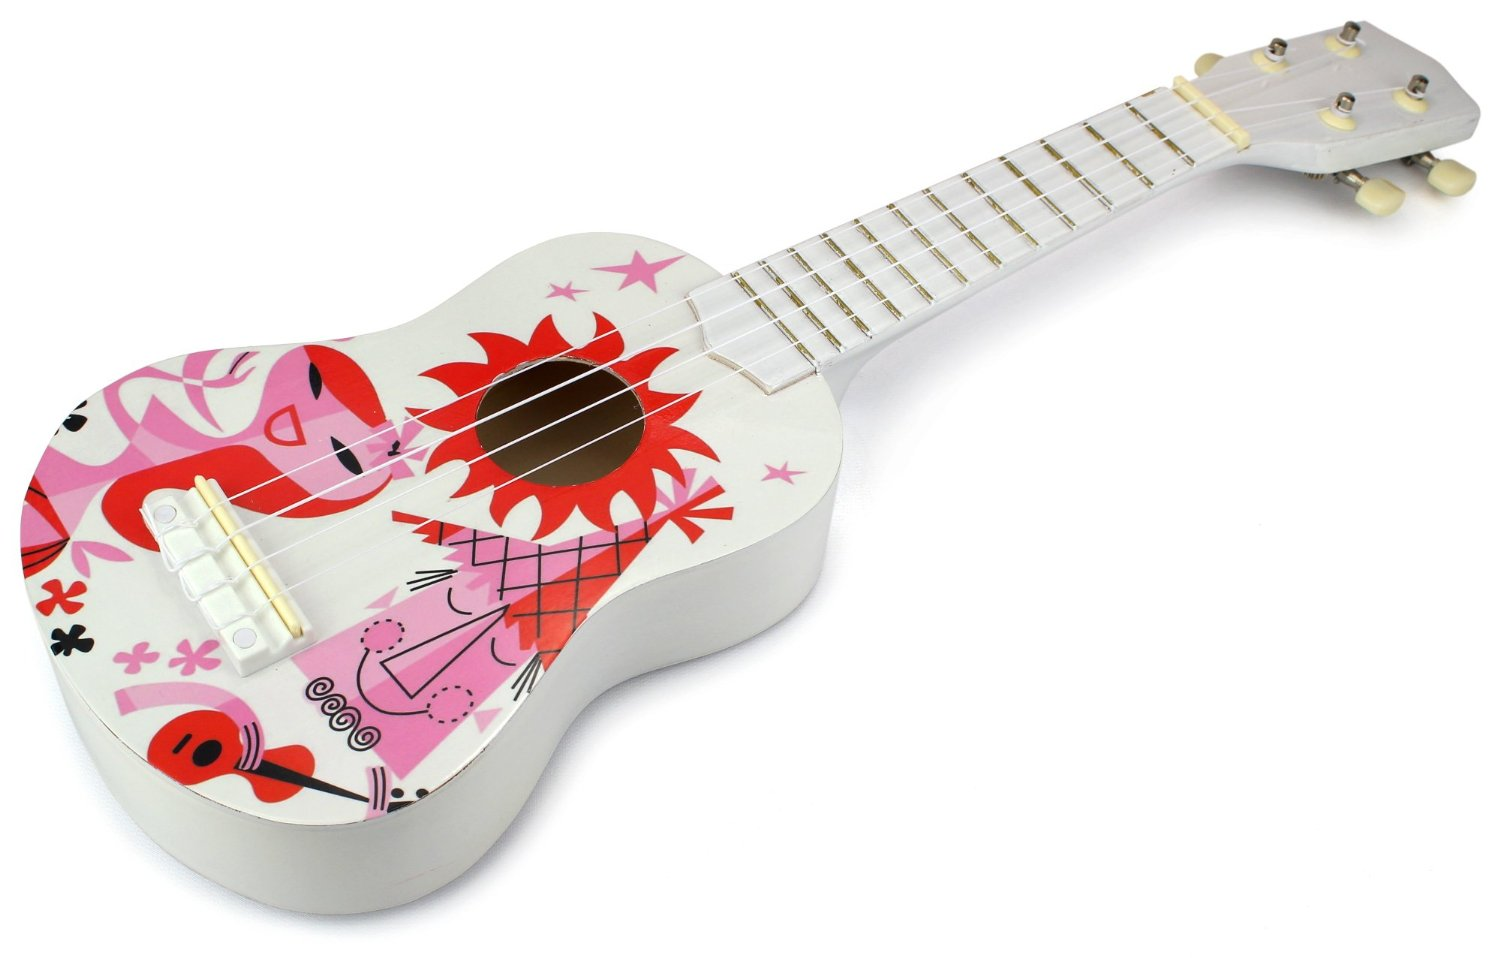 Velocity Toys Classic Ukulele 4 Stringed Toy Guitar Lute Musical Instrument (White Pink) by Velocity Toys